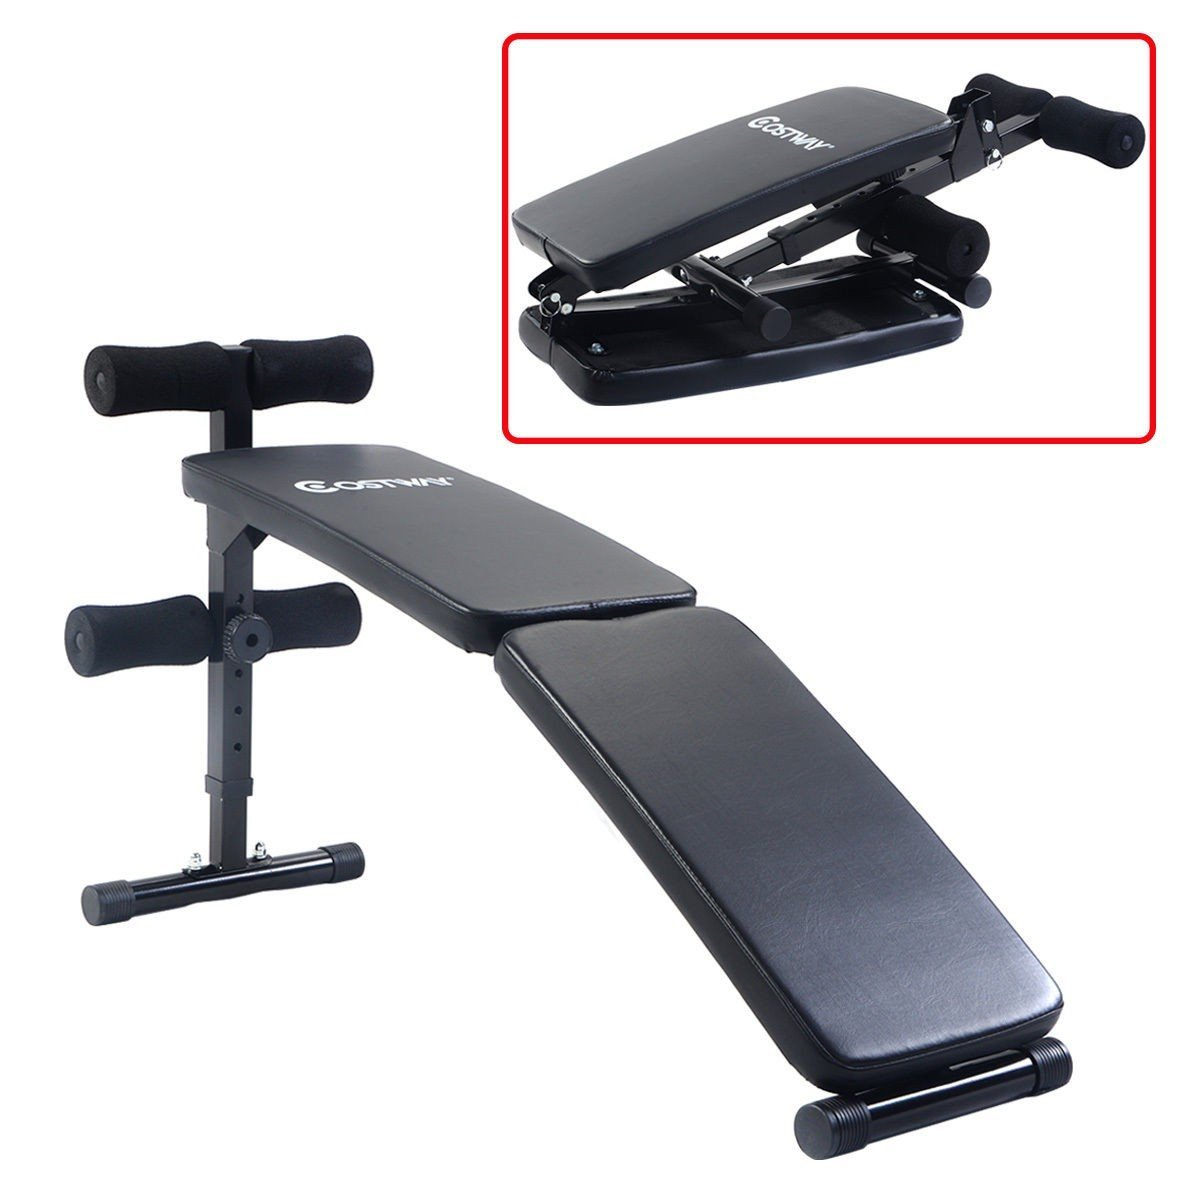 Adjustable Folding Arc-shaped Sit Up Bench Gym Home Exercise Fitness Workout